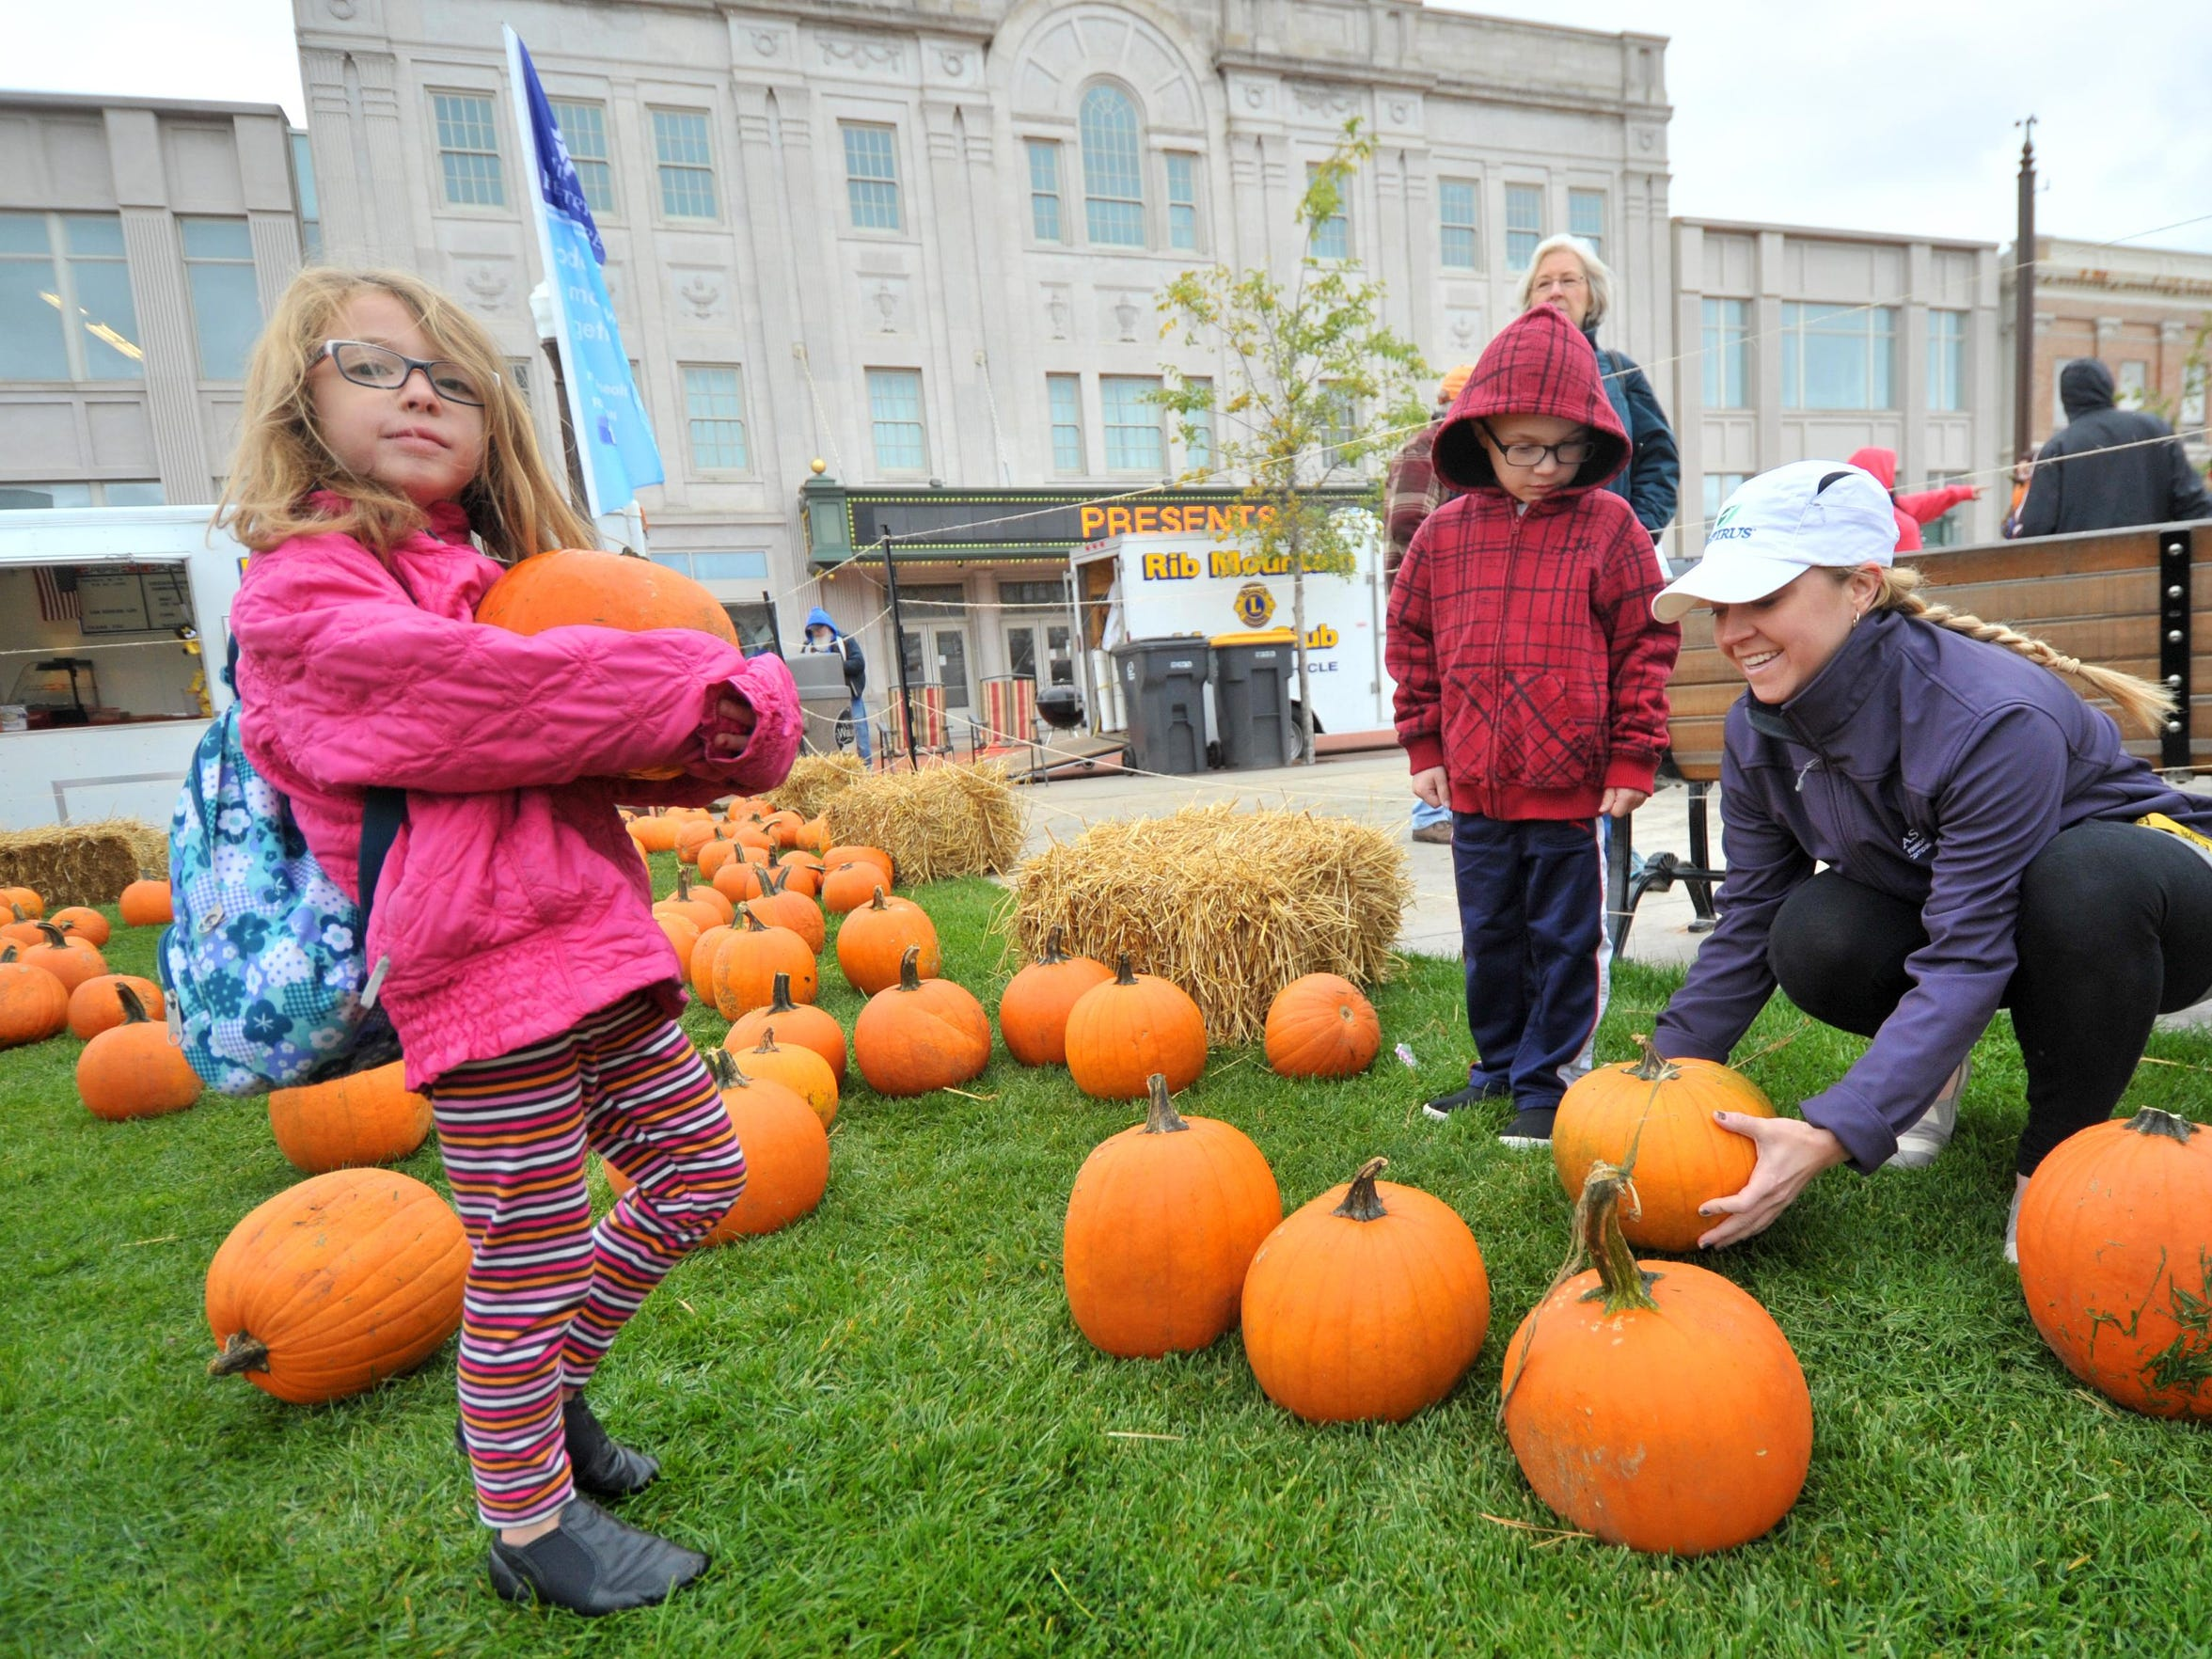 Falynn Bodenheimer, 6, left, poses for a photo while